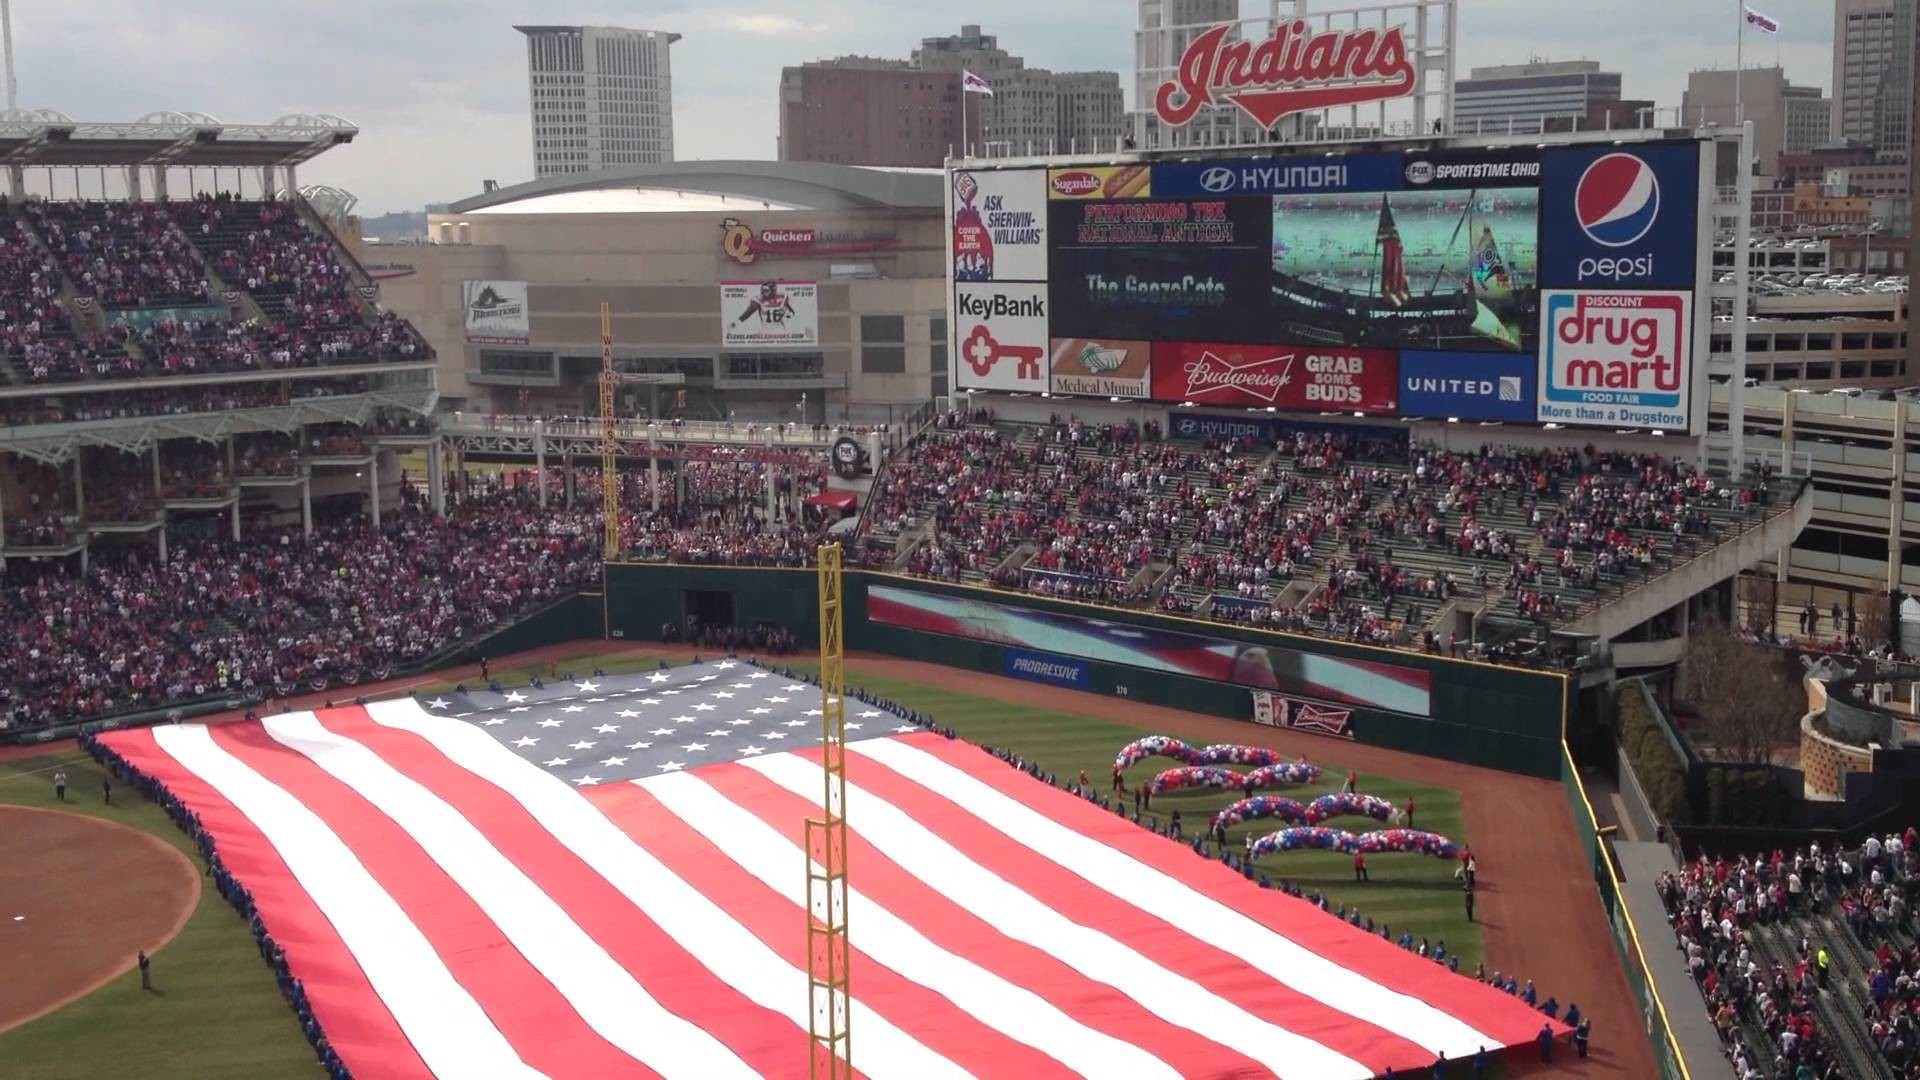 The National Anthem At The 2013 Cleveland Indians Home Opener